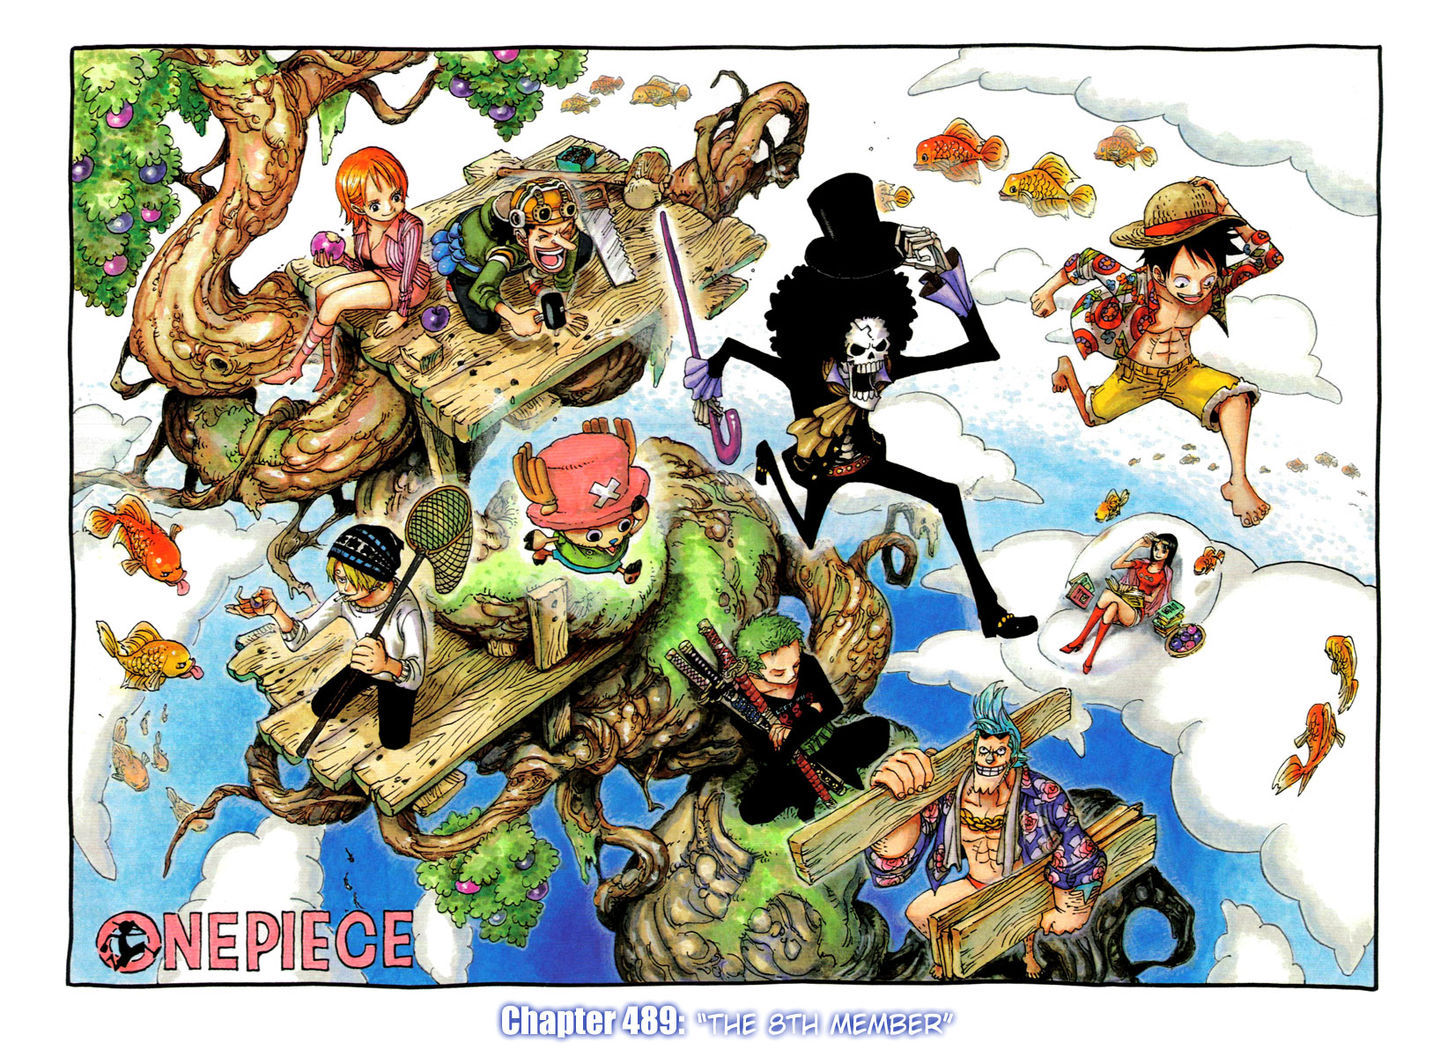 https://im.nineanime.com/comics/pic9/32/96/2837/OnePiece4890719.jpg Page 1